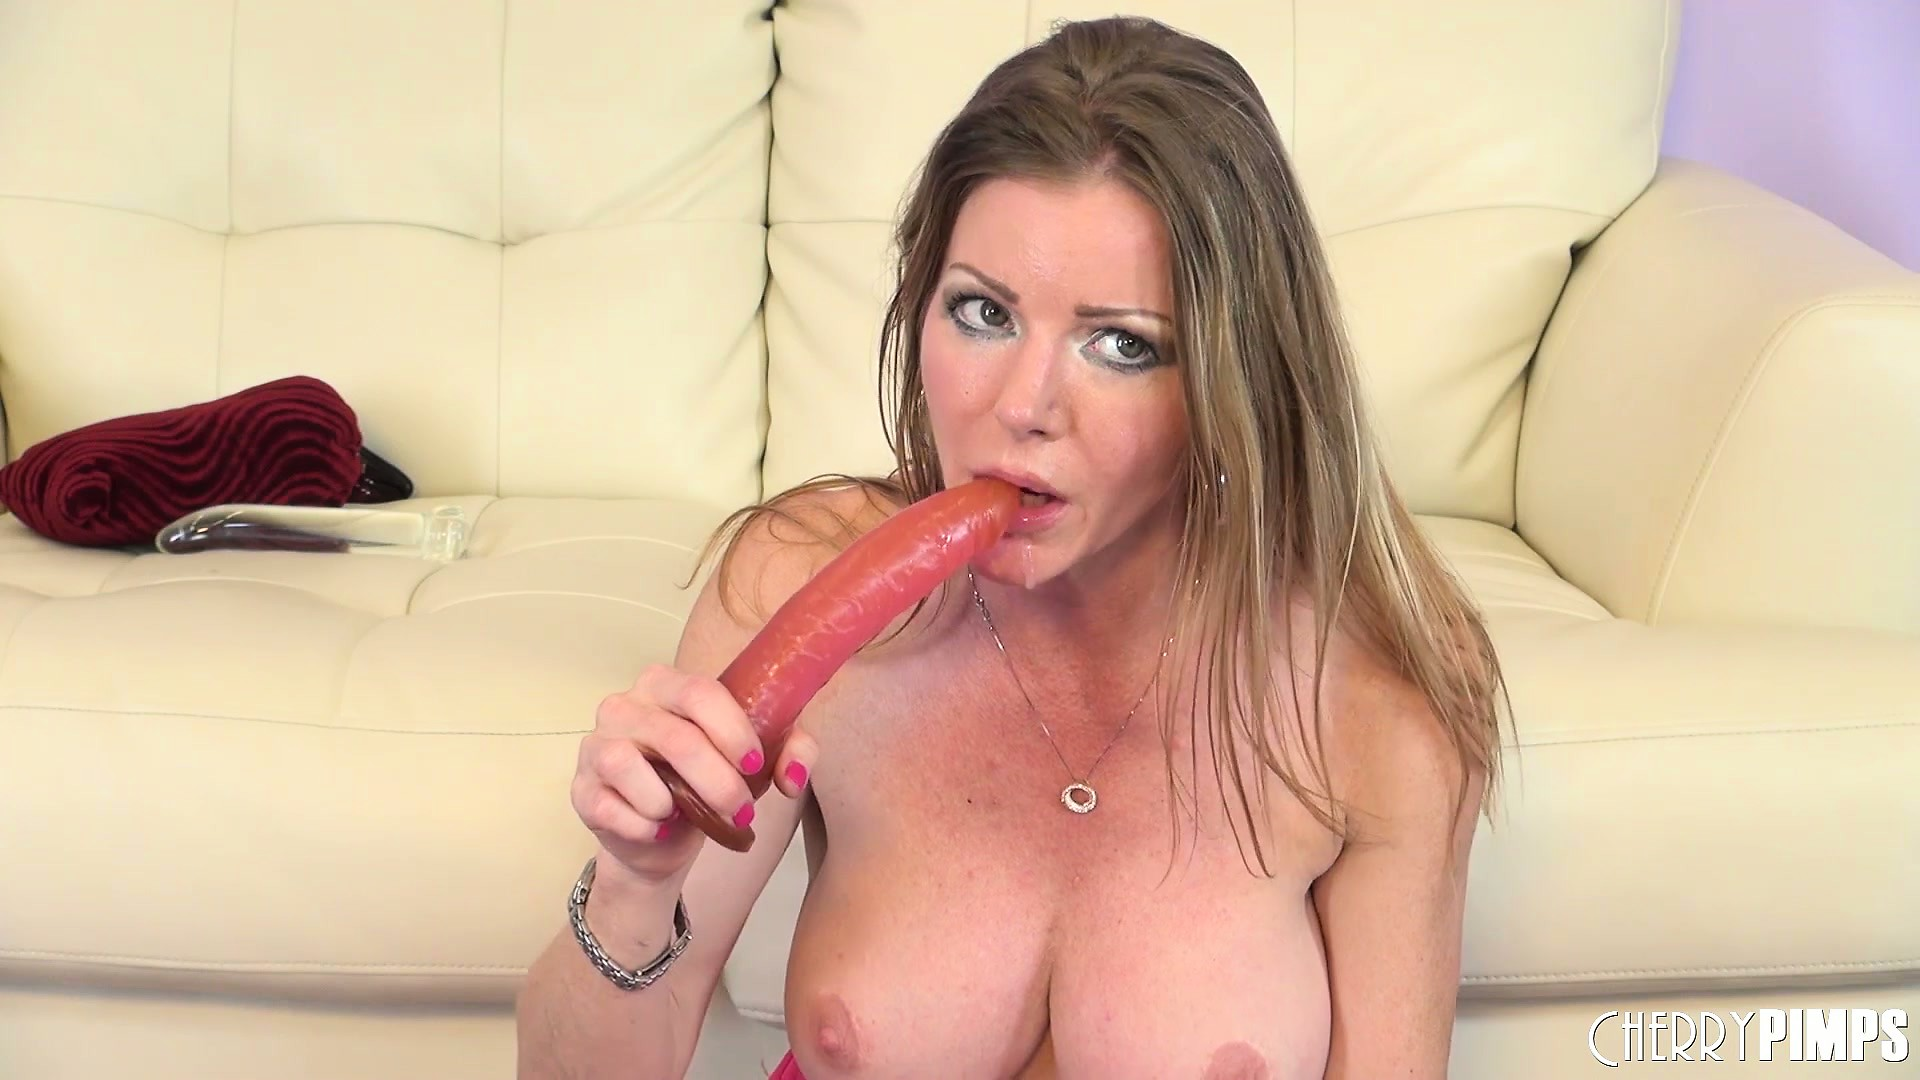 Porn Tube of Amber Michaels Using A Very Long Rubber Cock On Her Pussy And Her Mouth